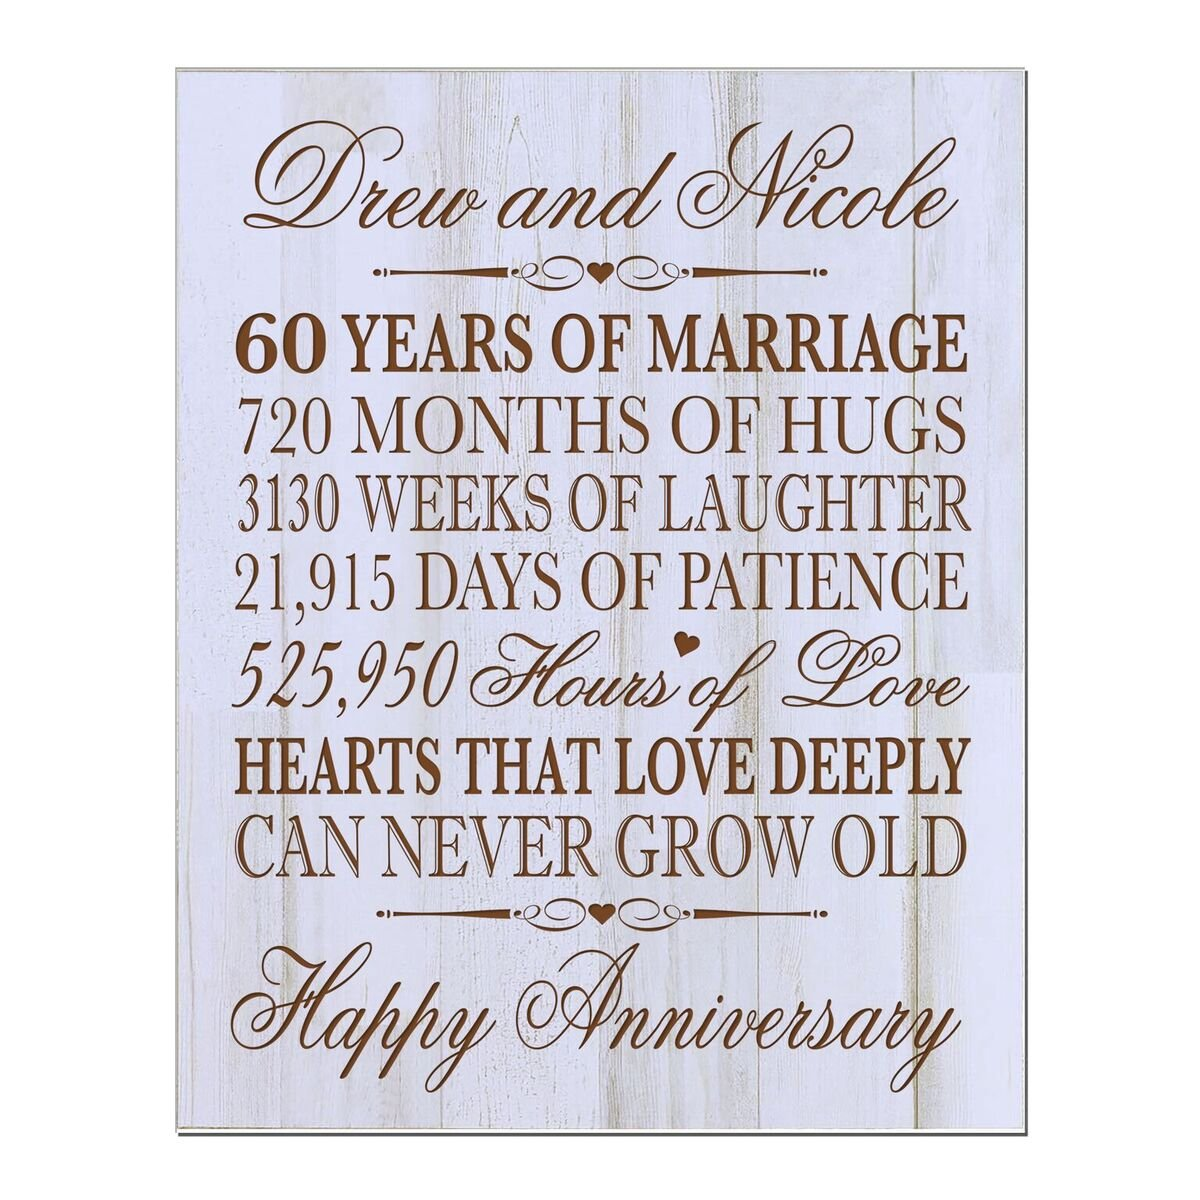 LifeSong Milestones Personalized 60th Wedding Anniversary Wall Plaque Gifts for Couple, Custom Made 60th for Her,60th 12'' W X 15'' H Wall Plaque (DW) by LifeSong Milestones (Image #2)